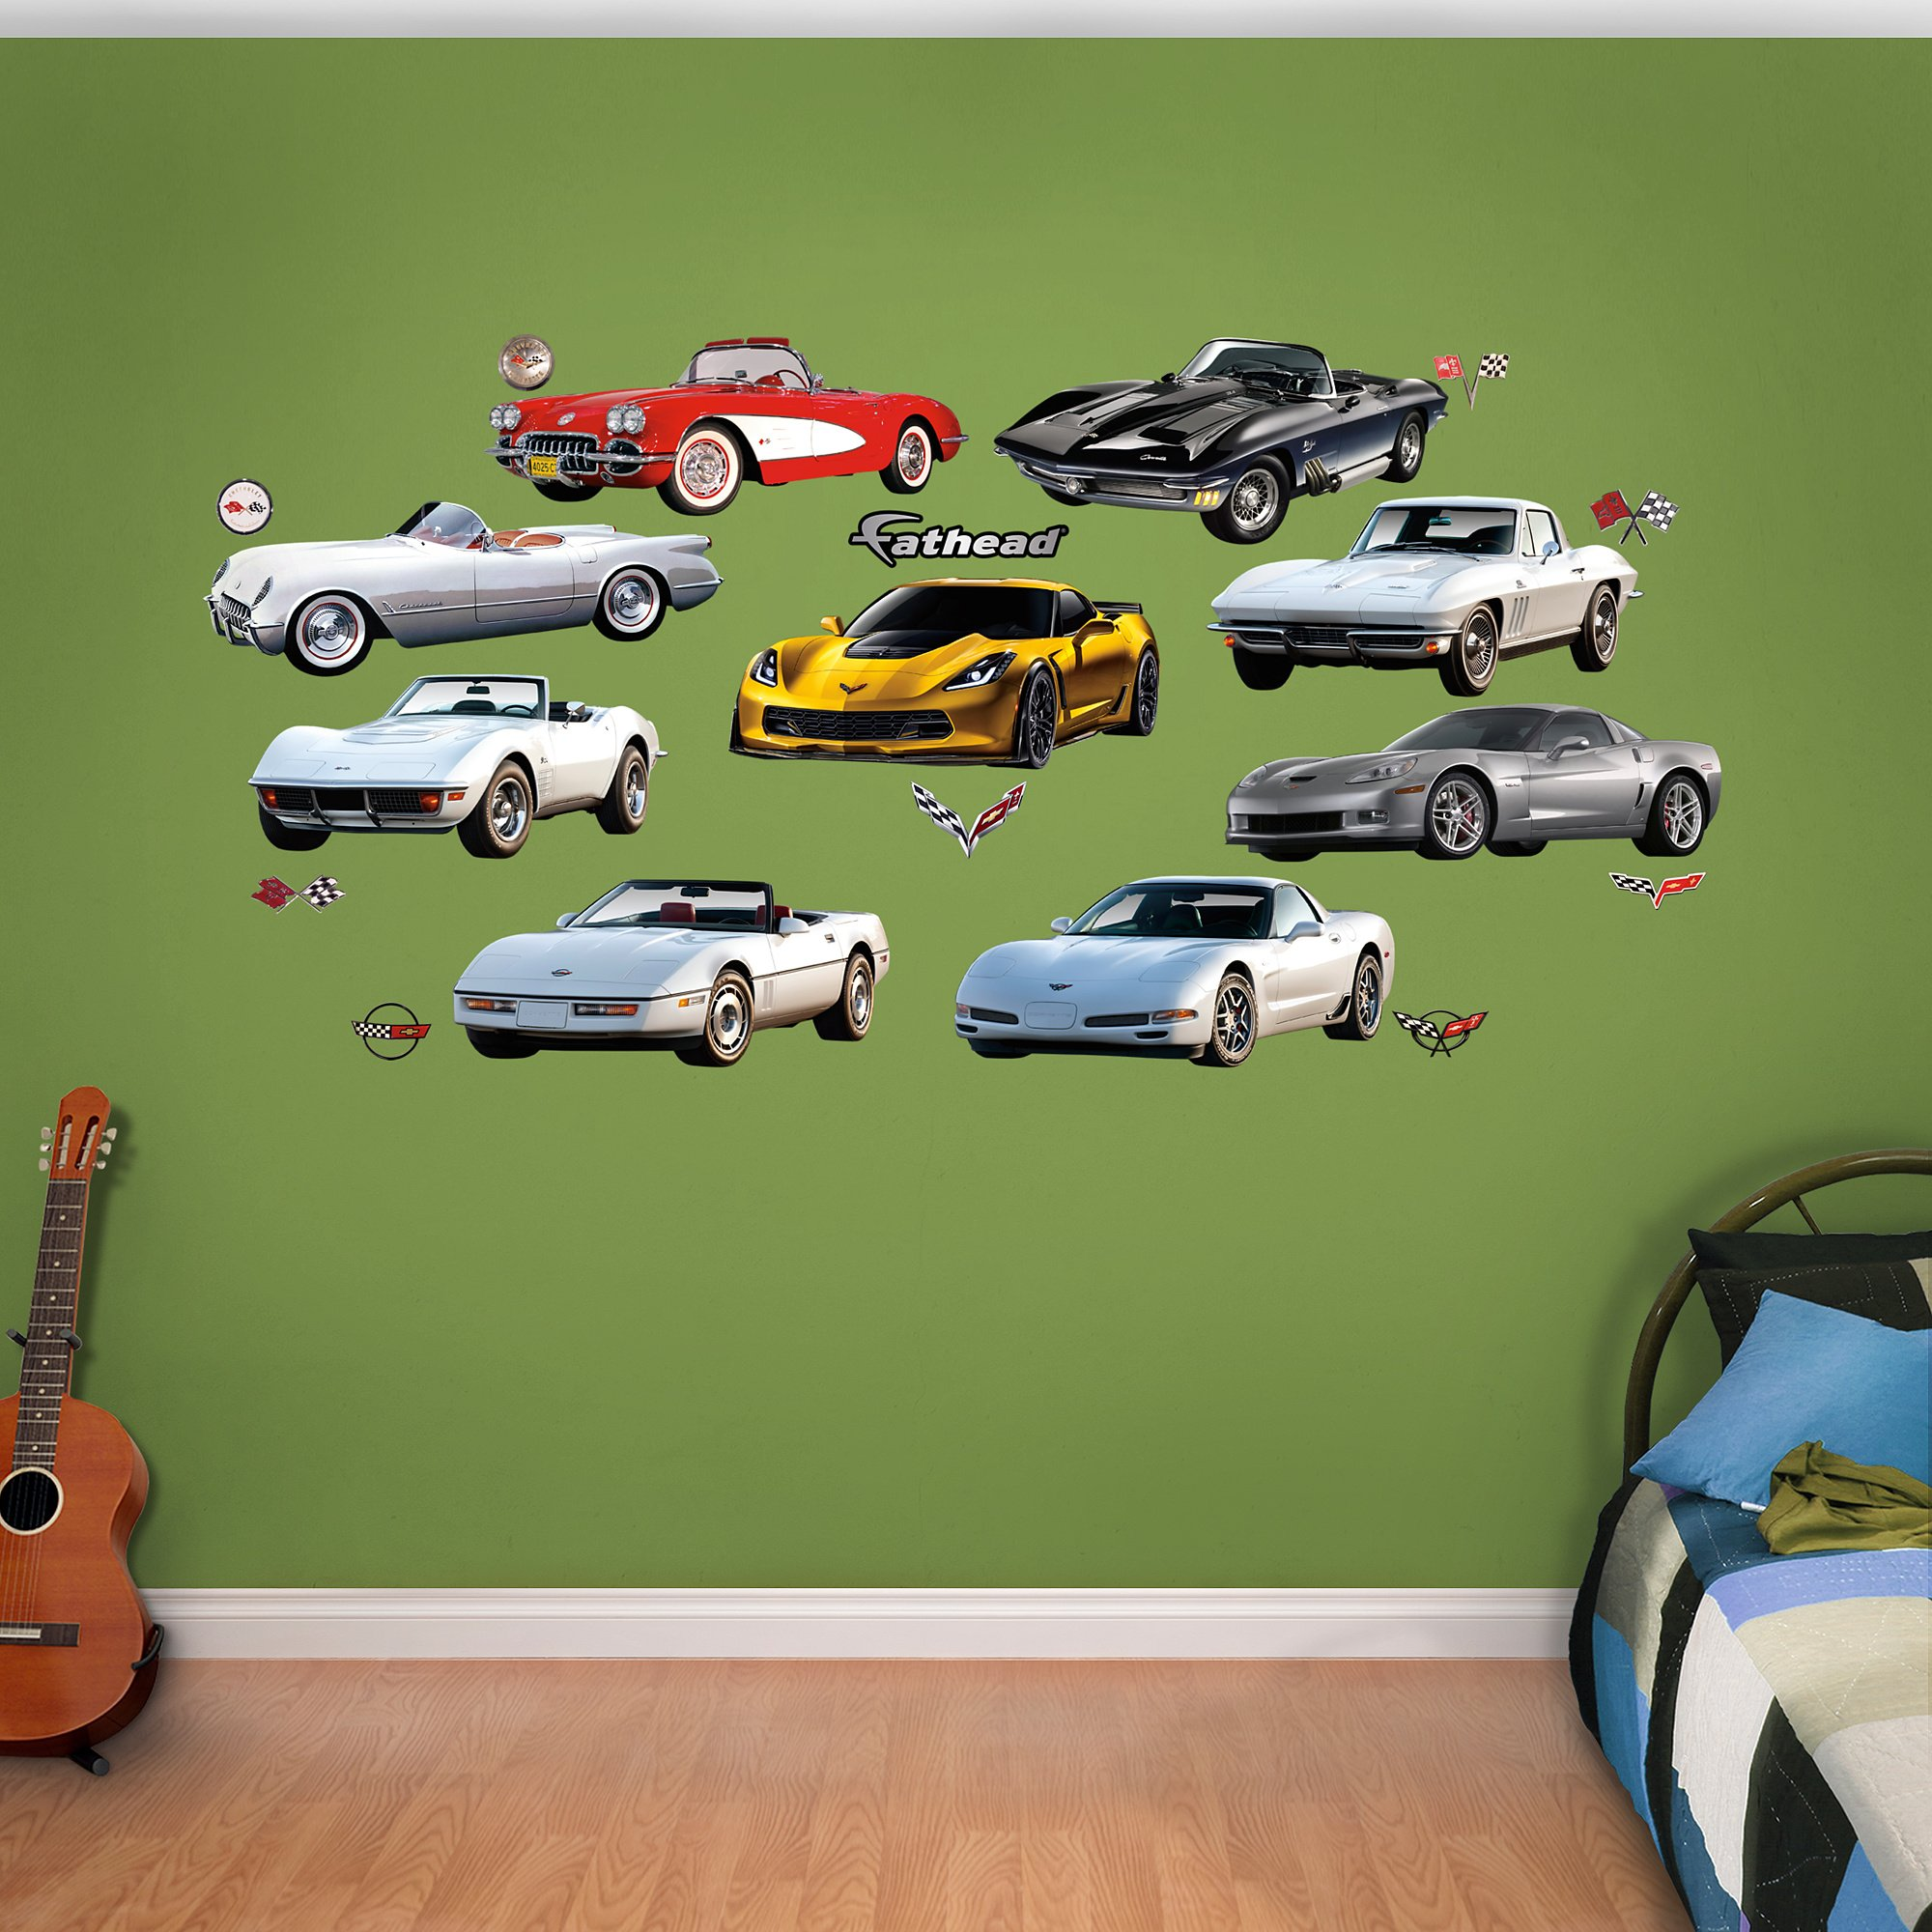 Fathead Corvette Generations Collection Real Decals by FATHEAD